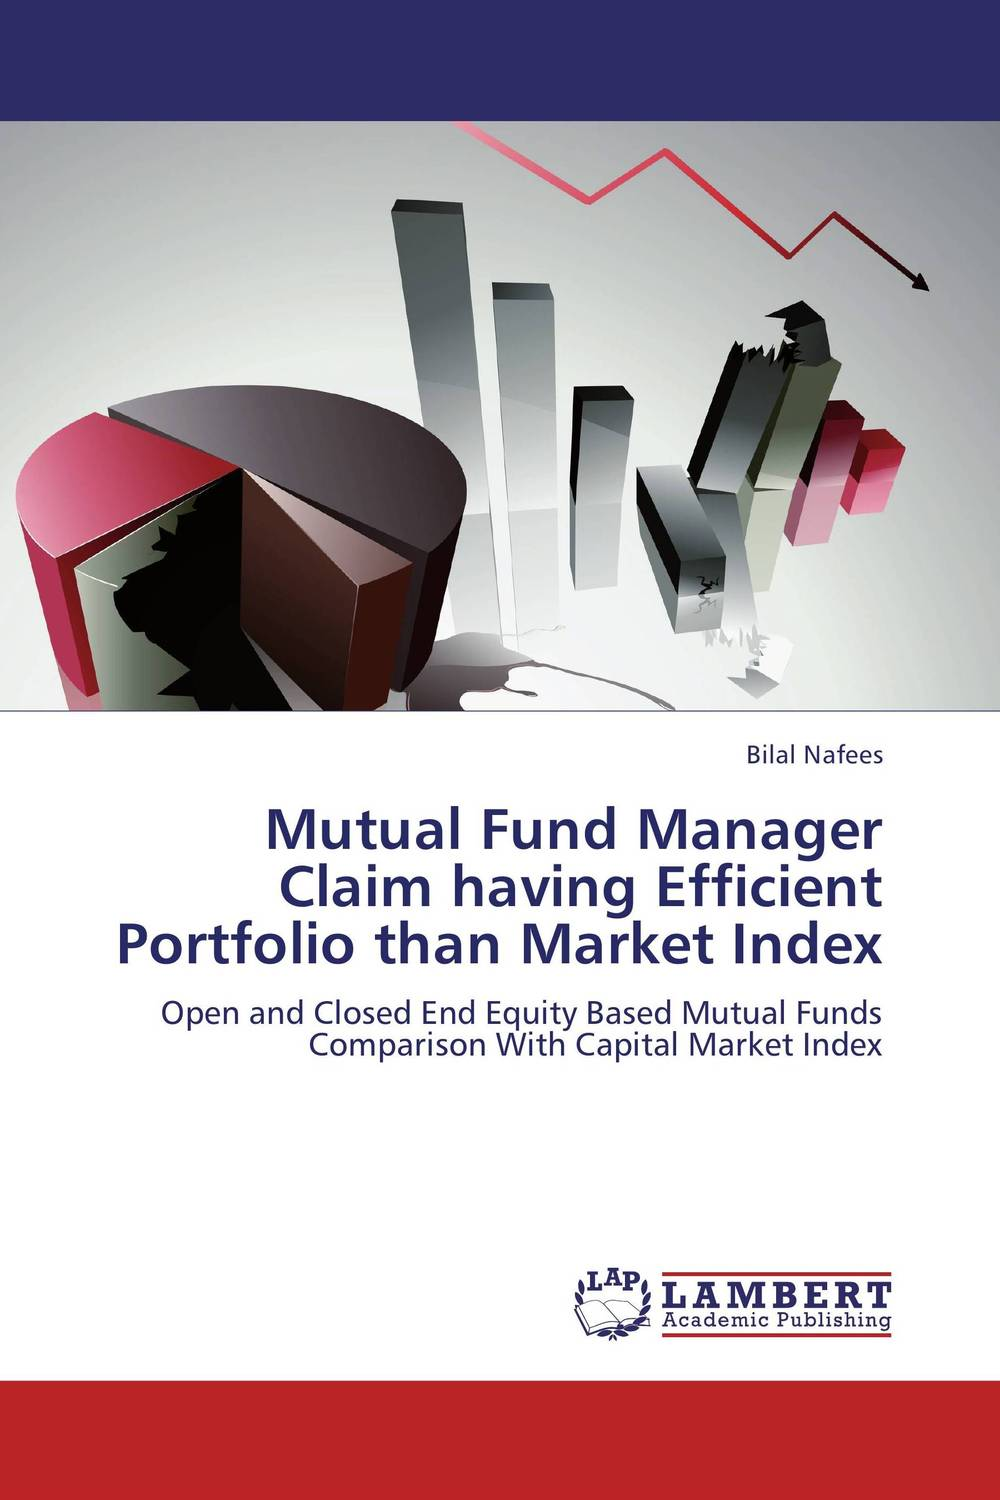 Mutual Fund Manager Claim having Efficient Portfolio than Market Index john haslem a mutual funds portfolio structures analysis management and stewardship